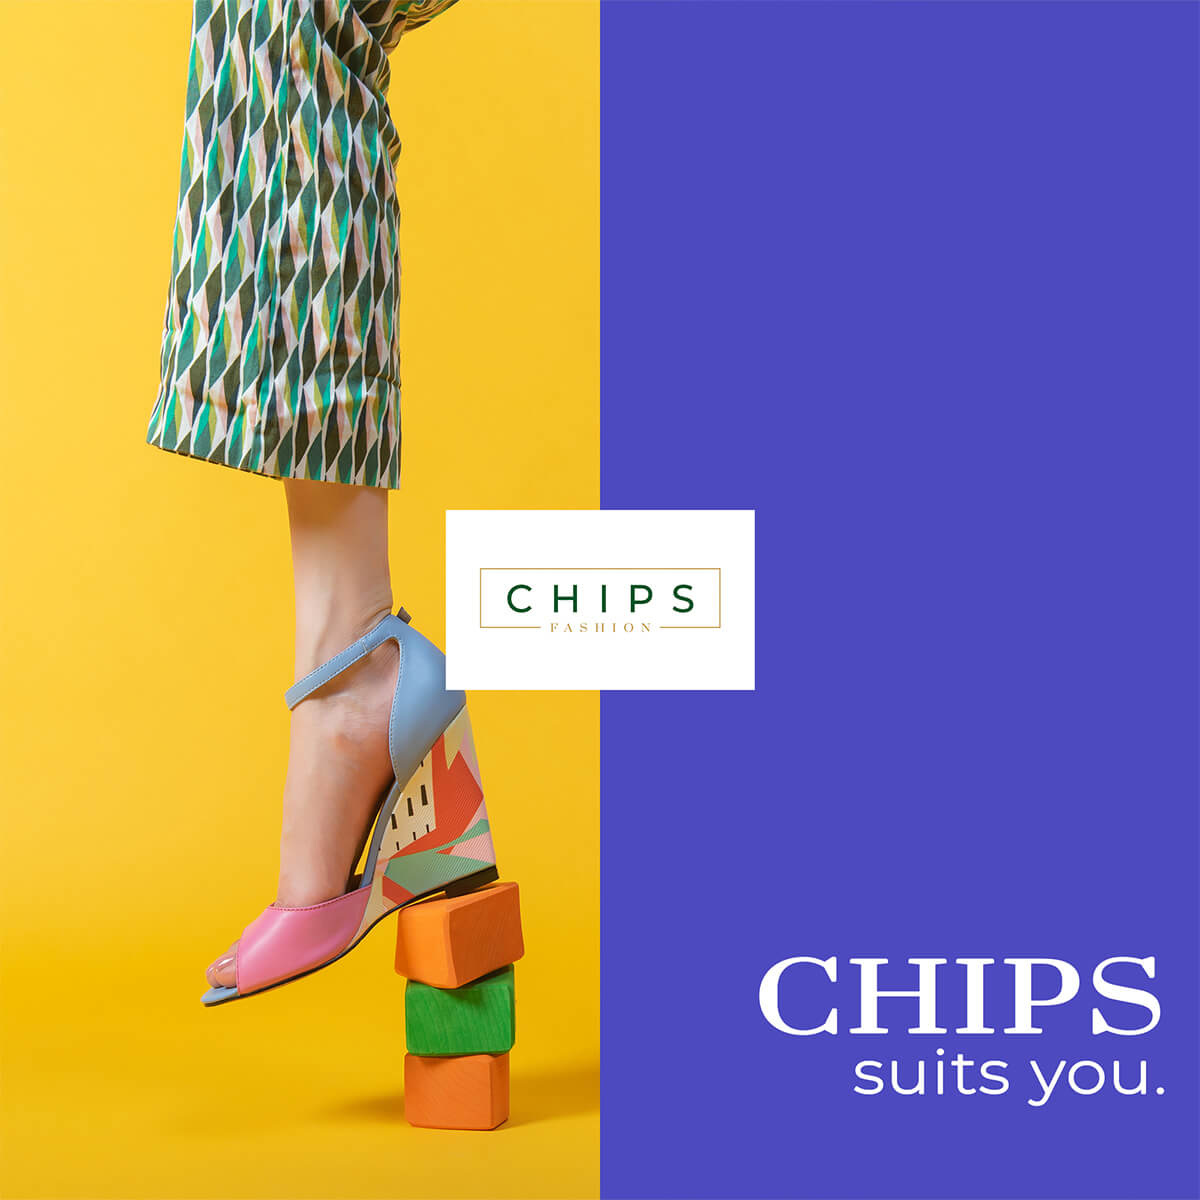 Chips suits you.